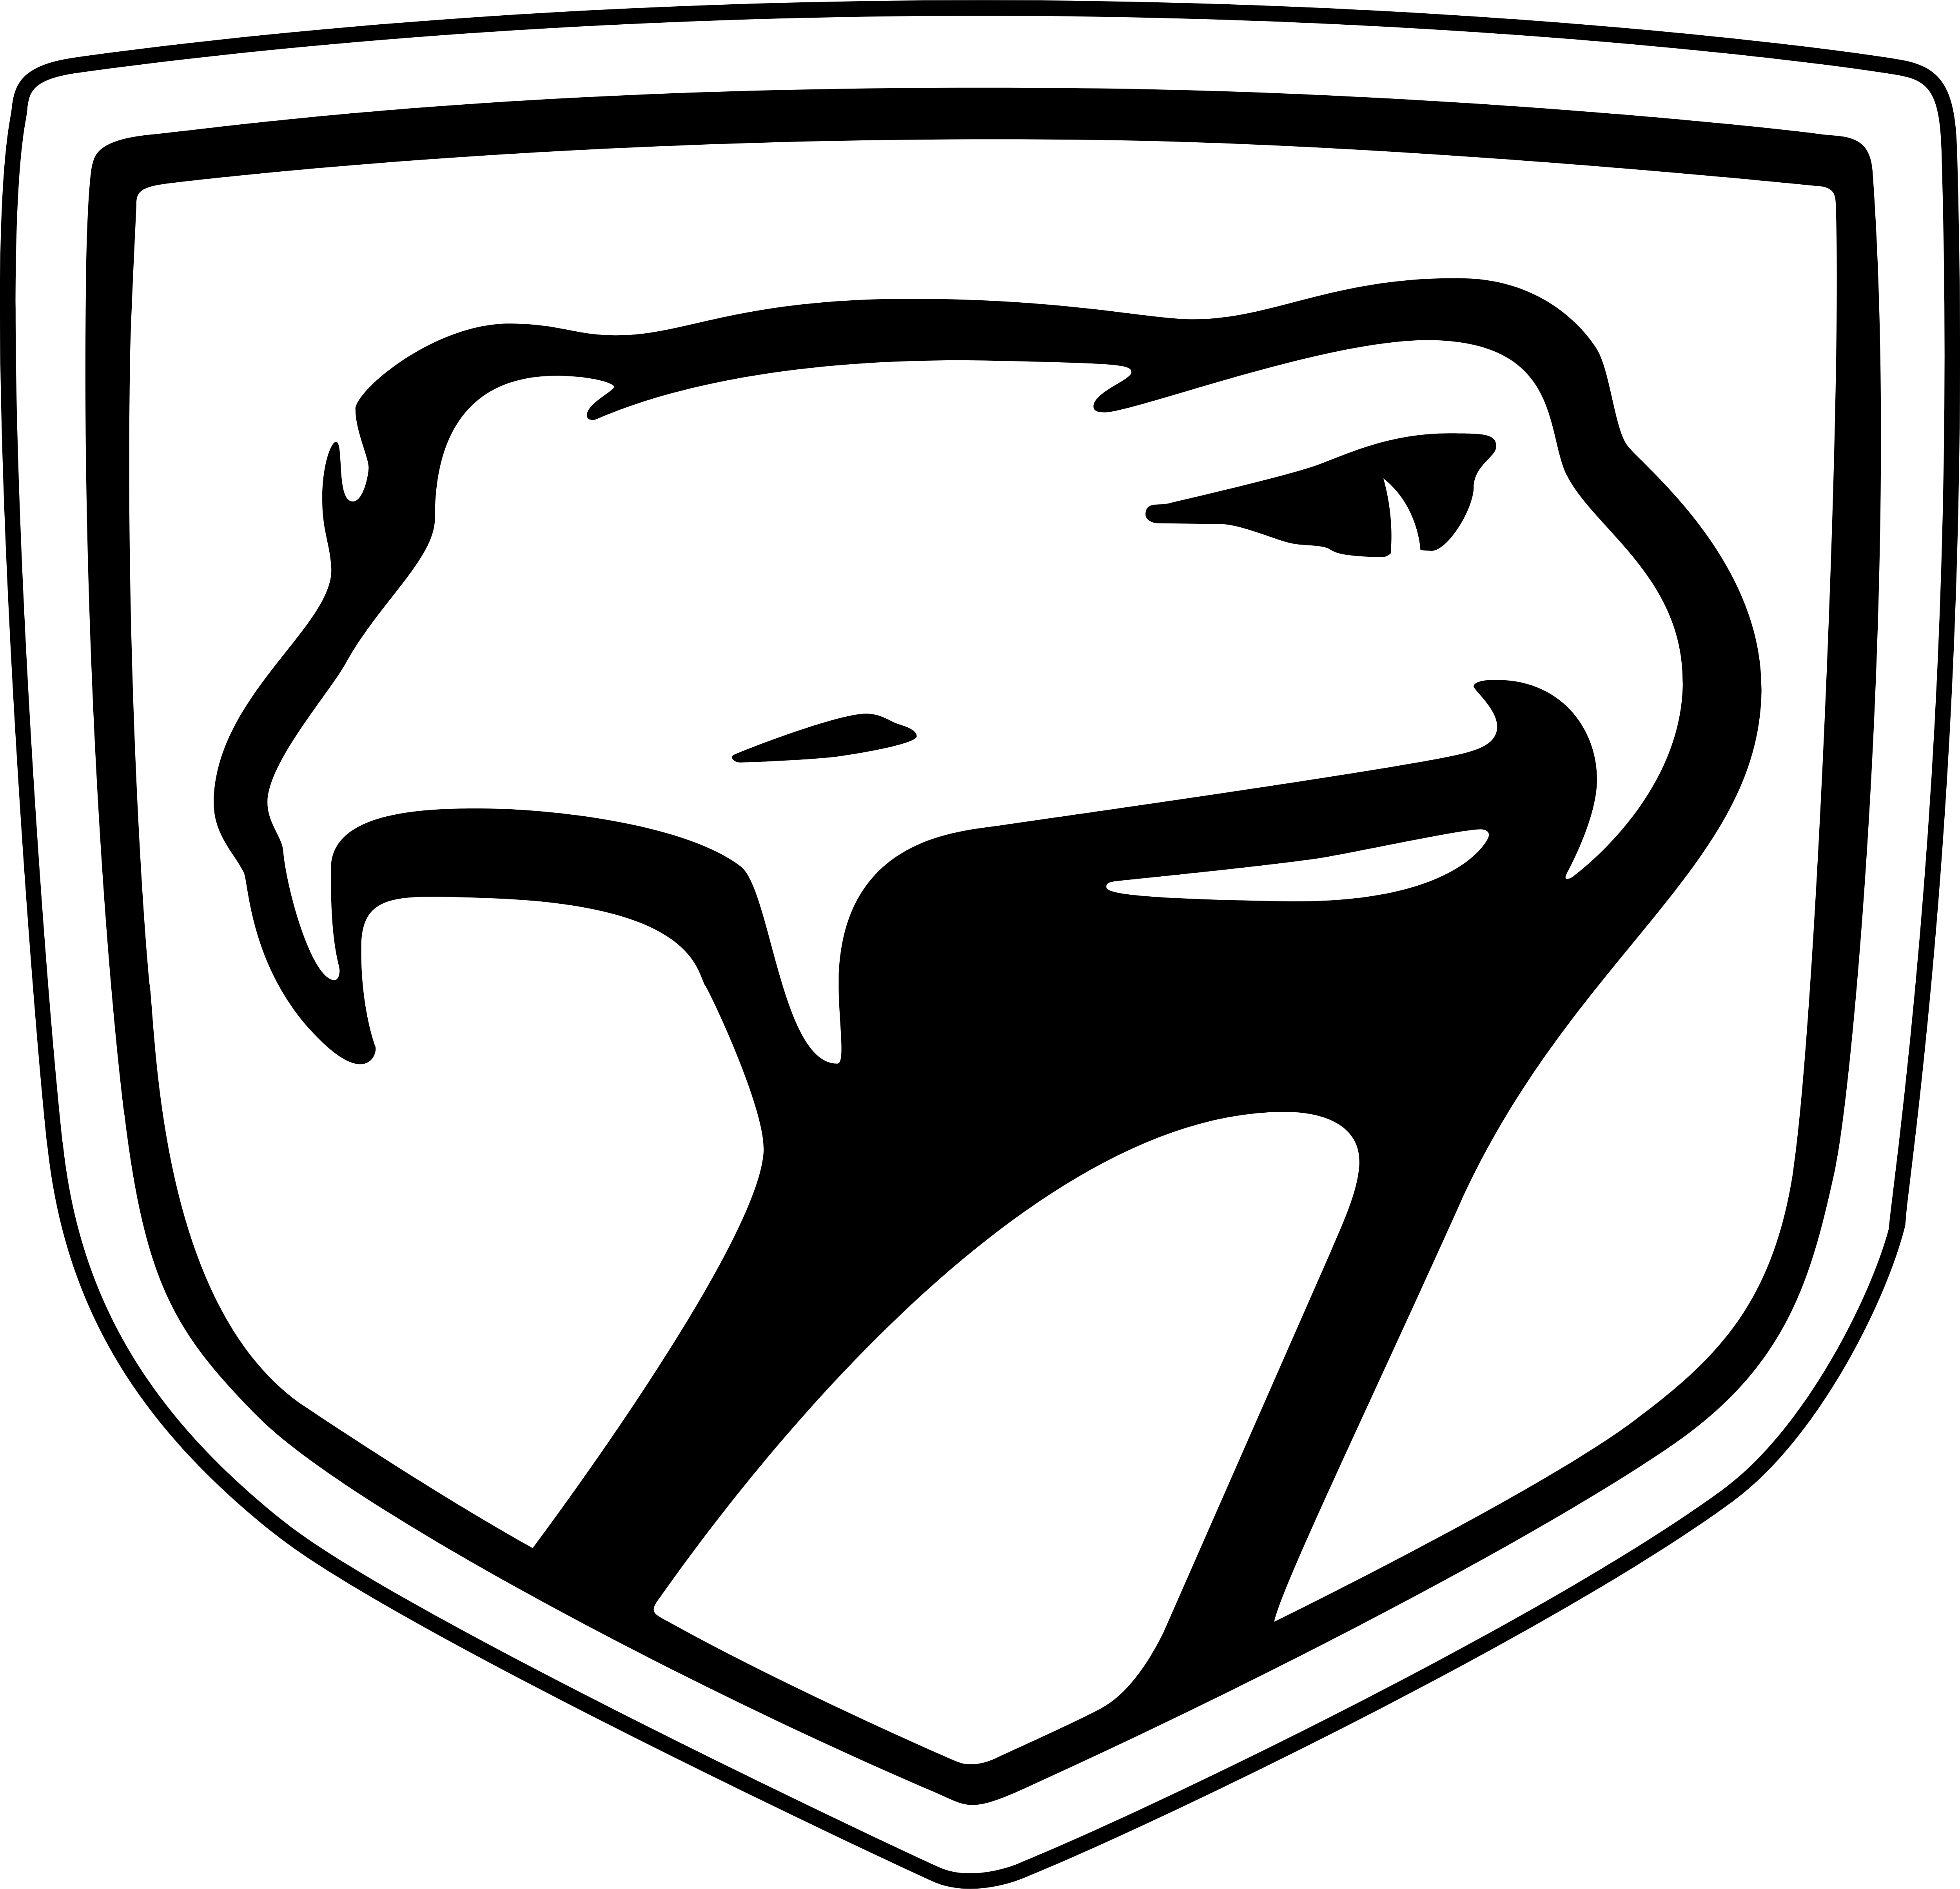 Viper logo fangs black and white png. Logos dodge download